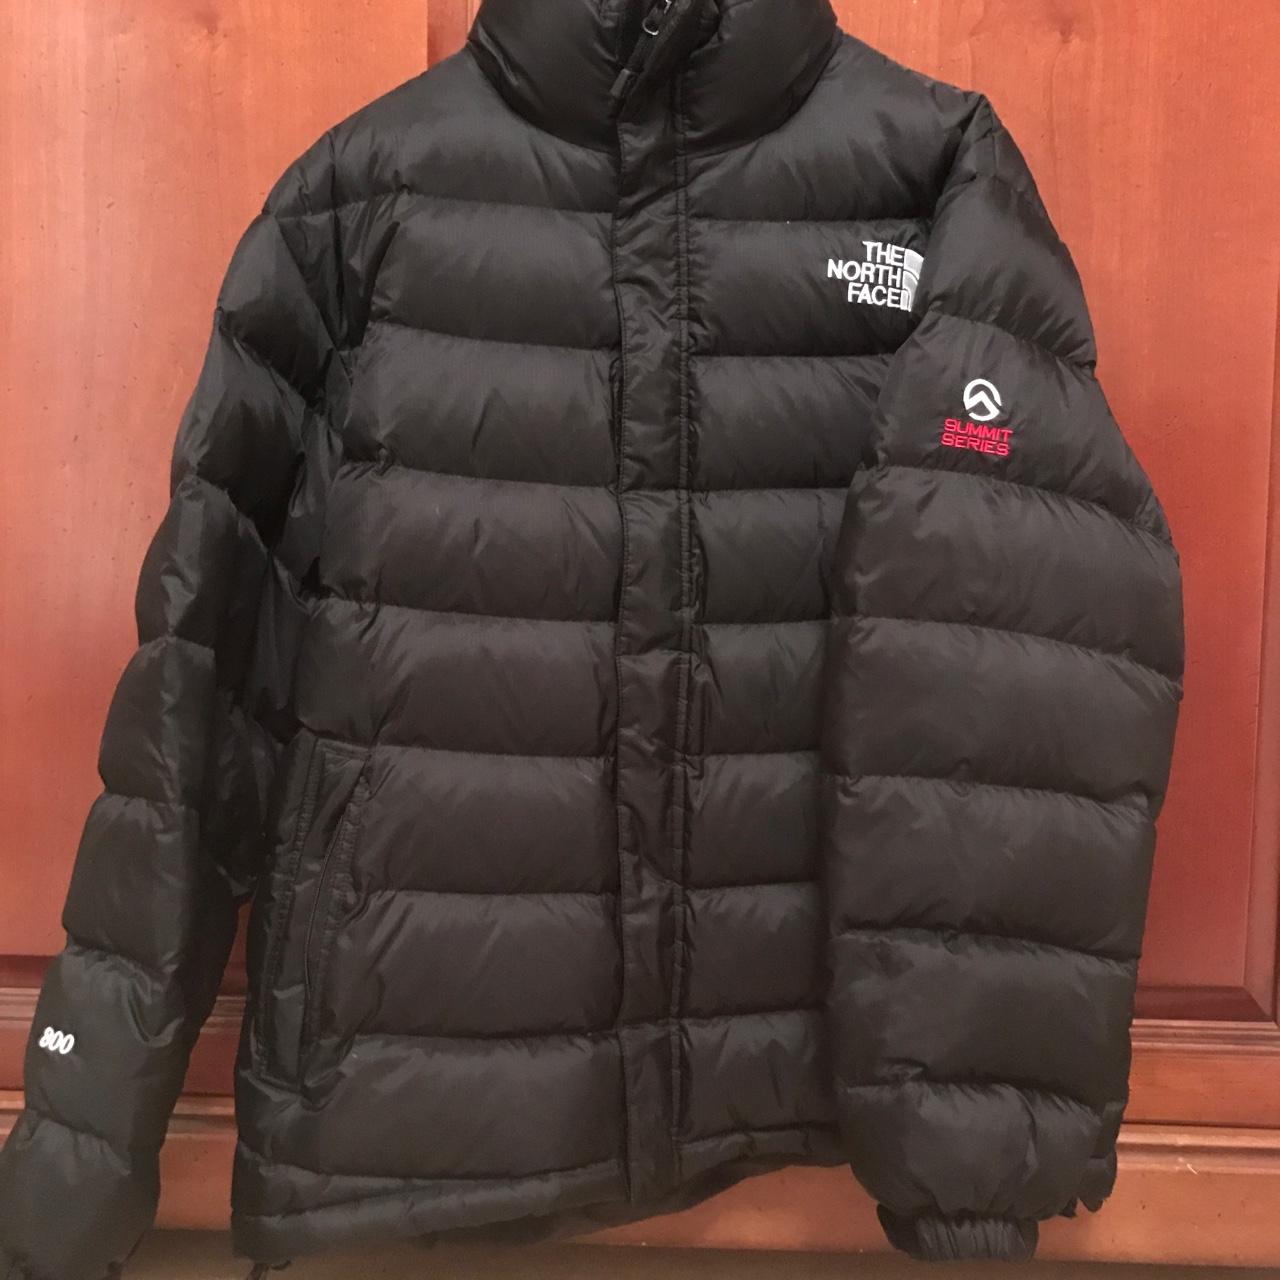 aa6c5256e NORTH FACE SUMMIT SERIES 800 NUPTSE PUFFA JACKET//... - Depop